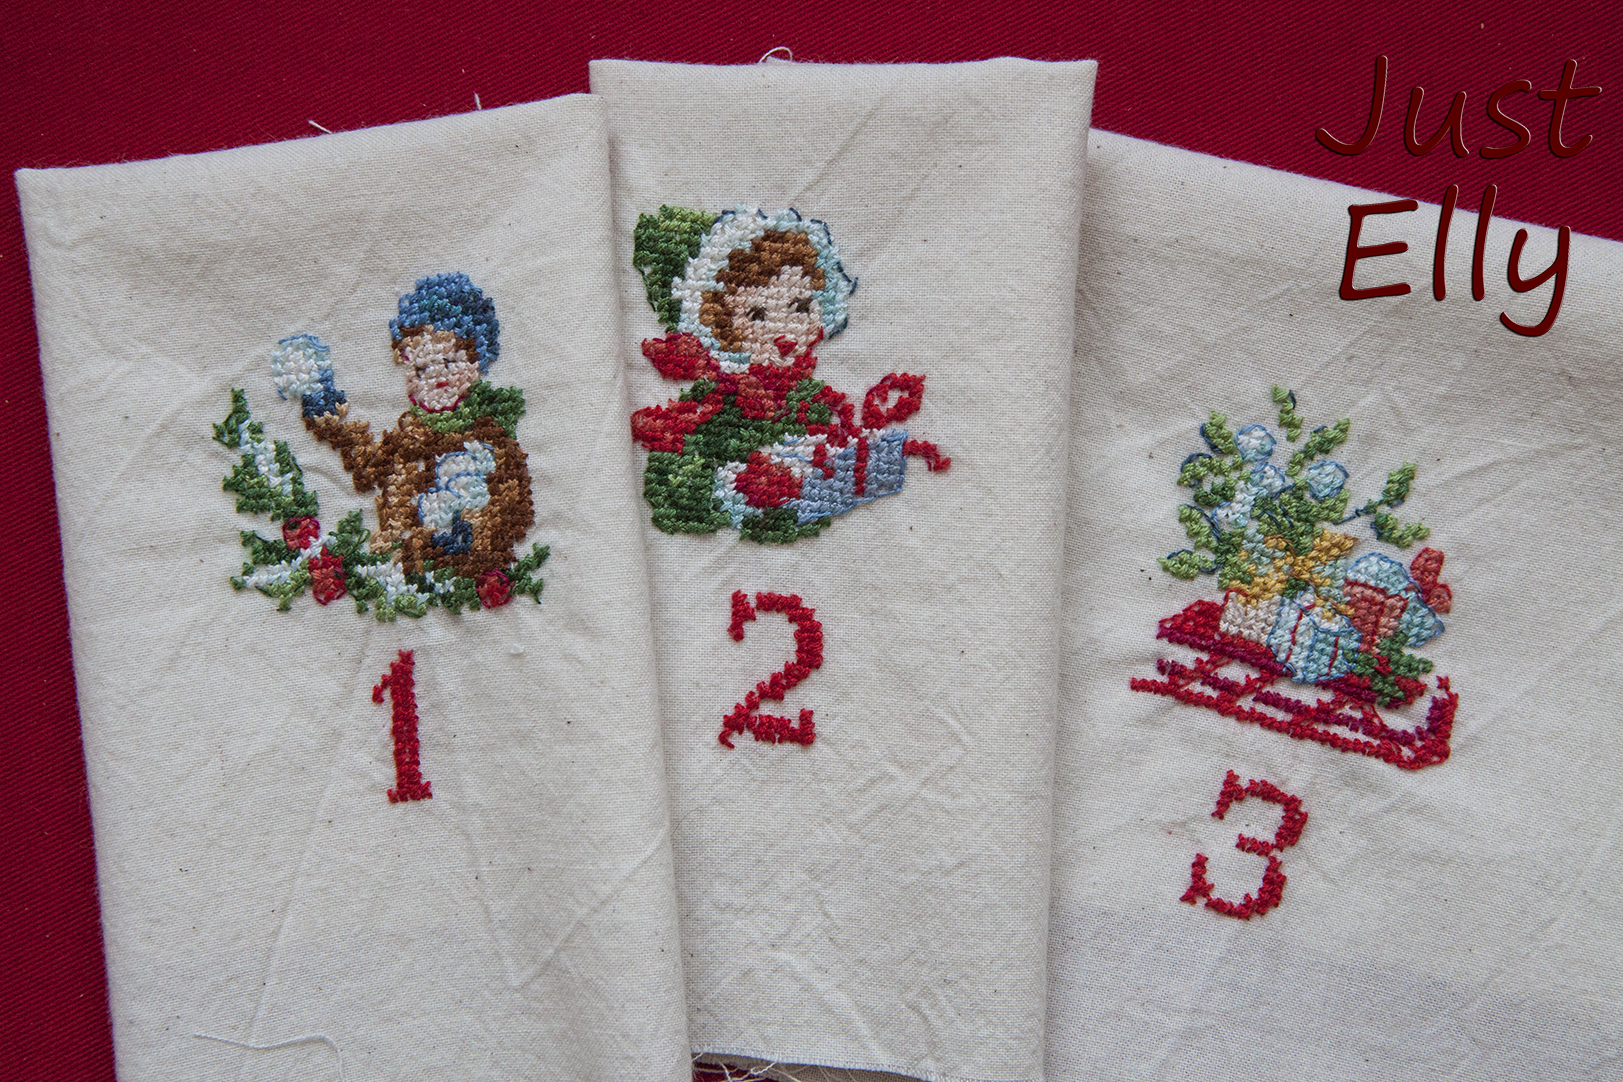 Cross stitching Dec 1-3